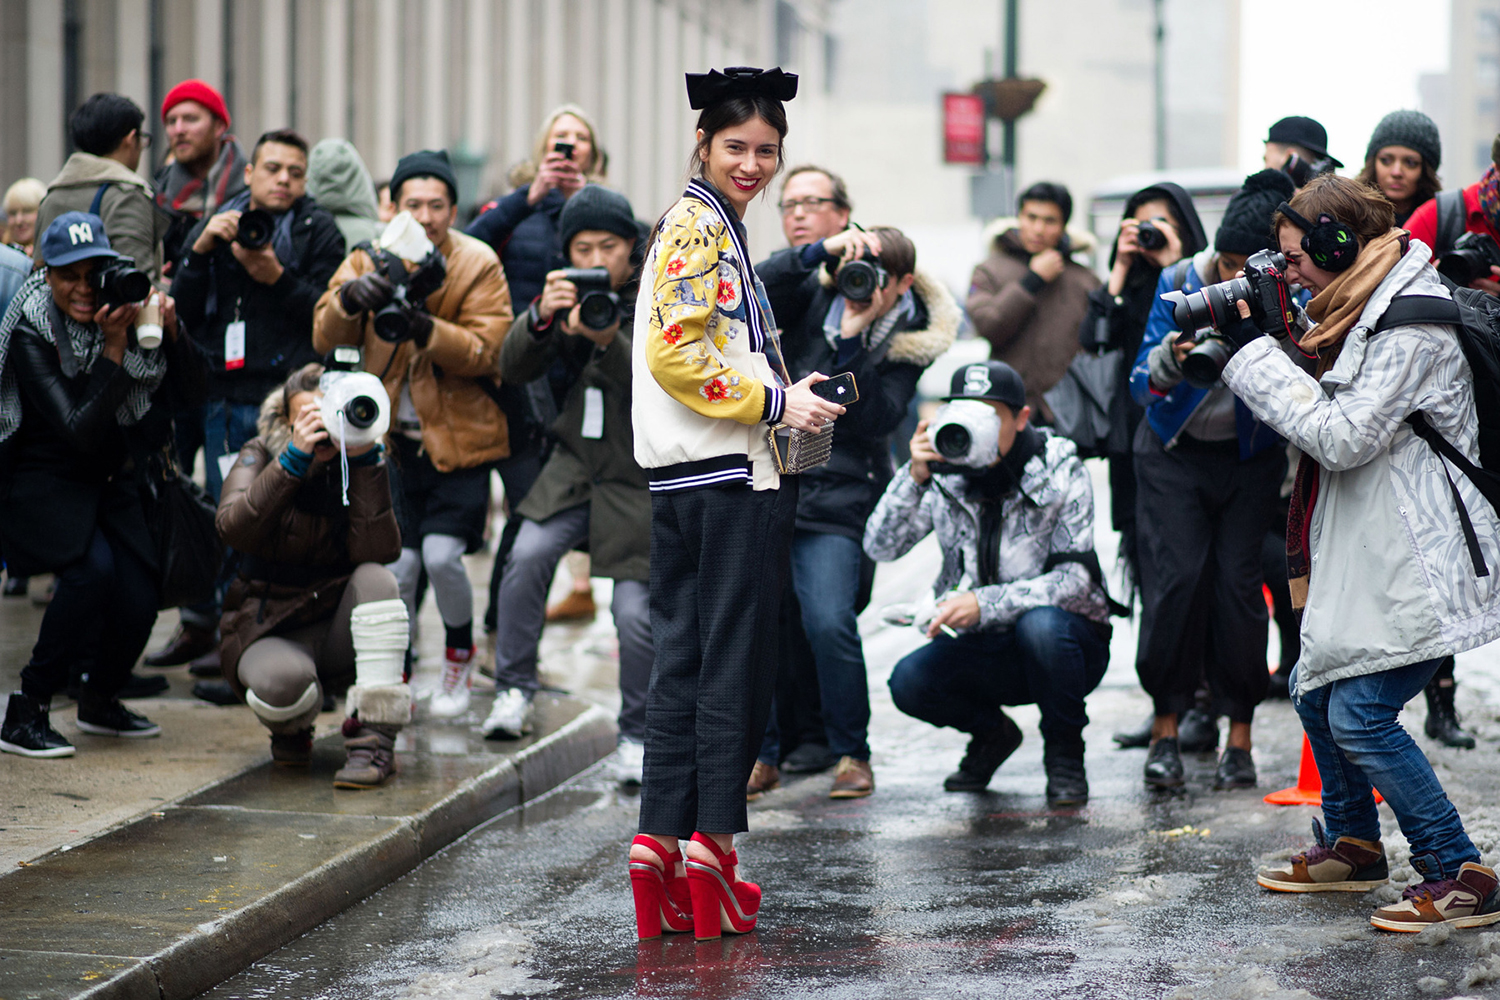 How To Get Your Photo Taken At Fashion Week Hypebeast